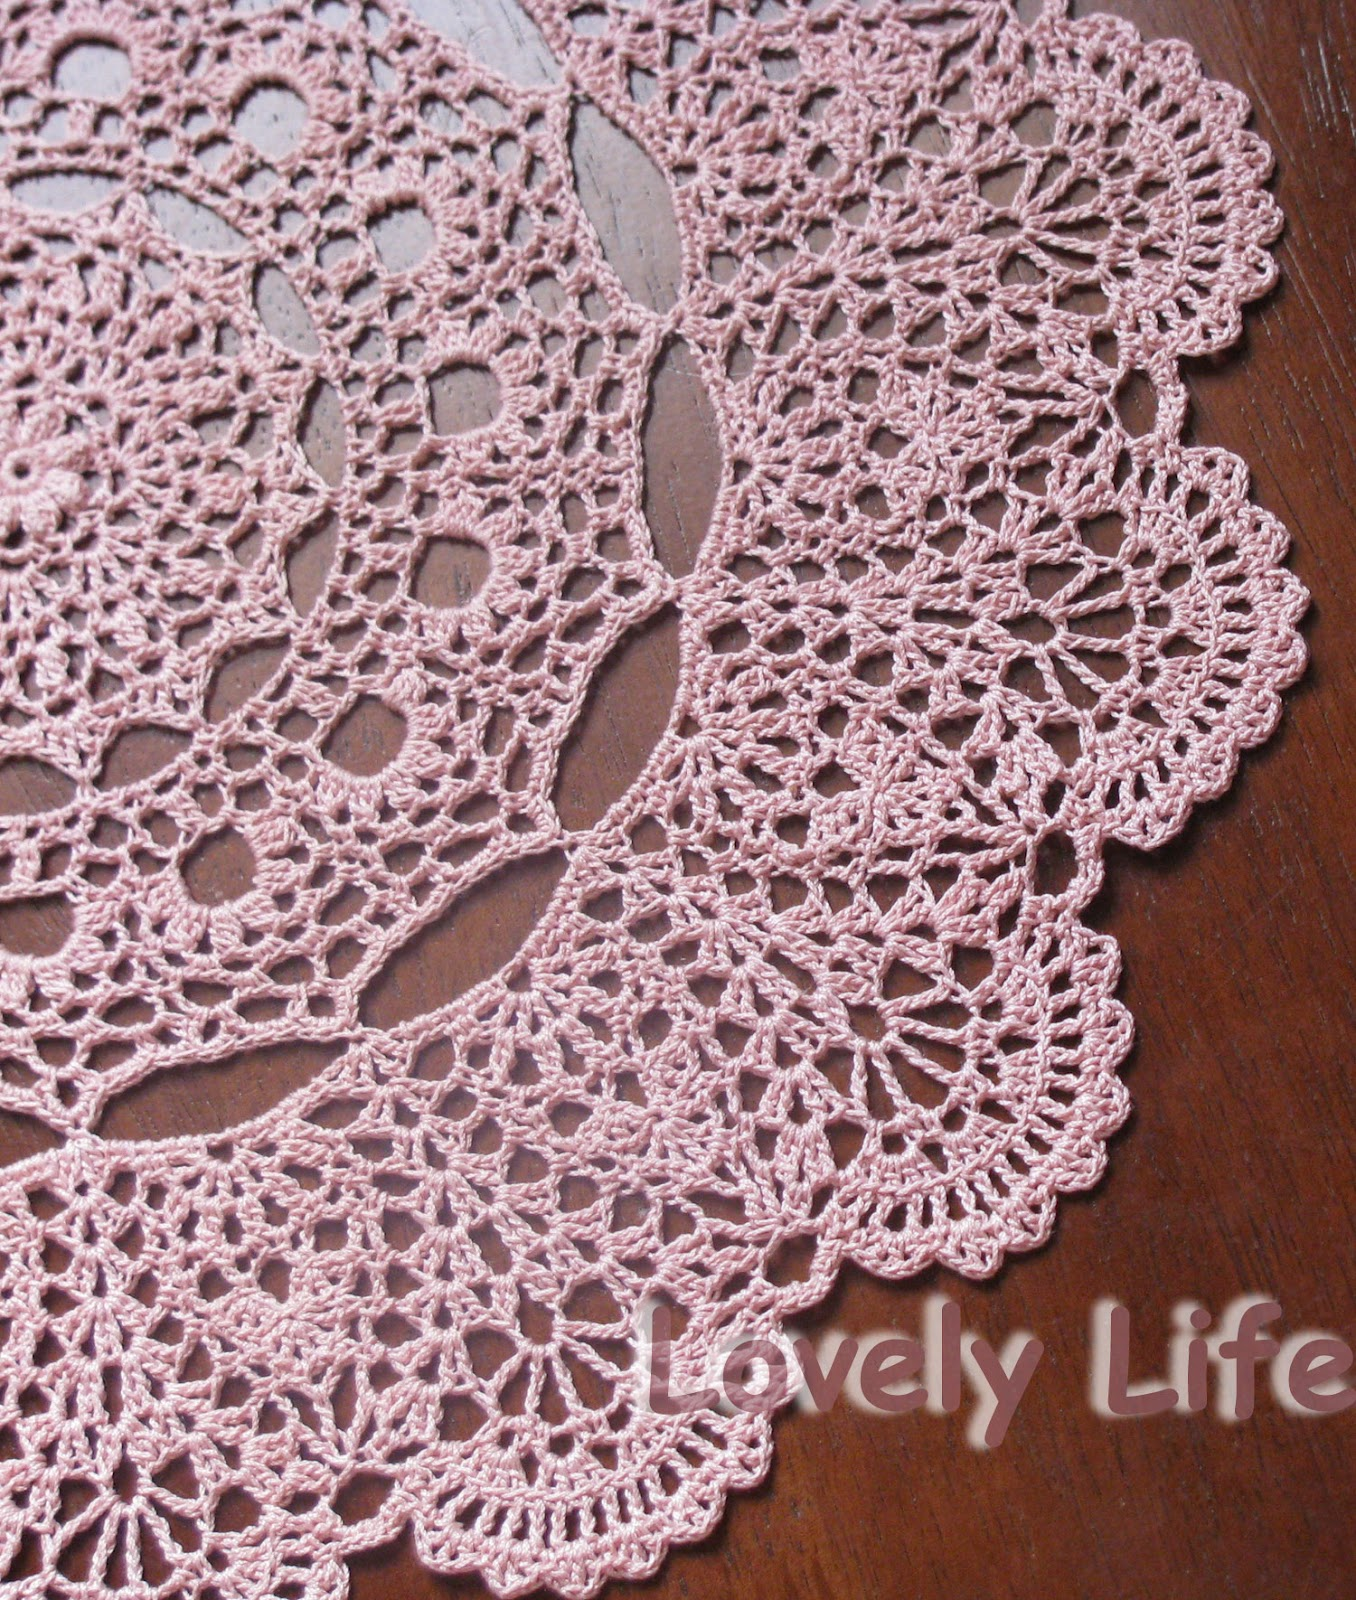 Lovely Life...: Mantilla Doily